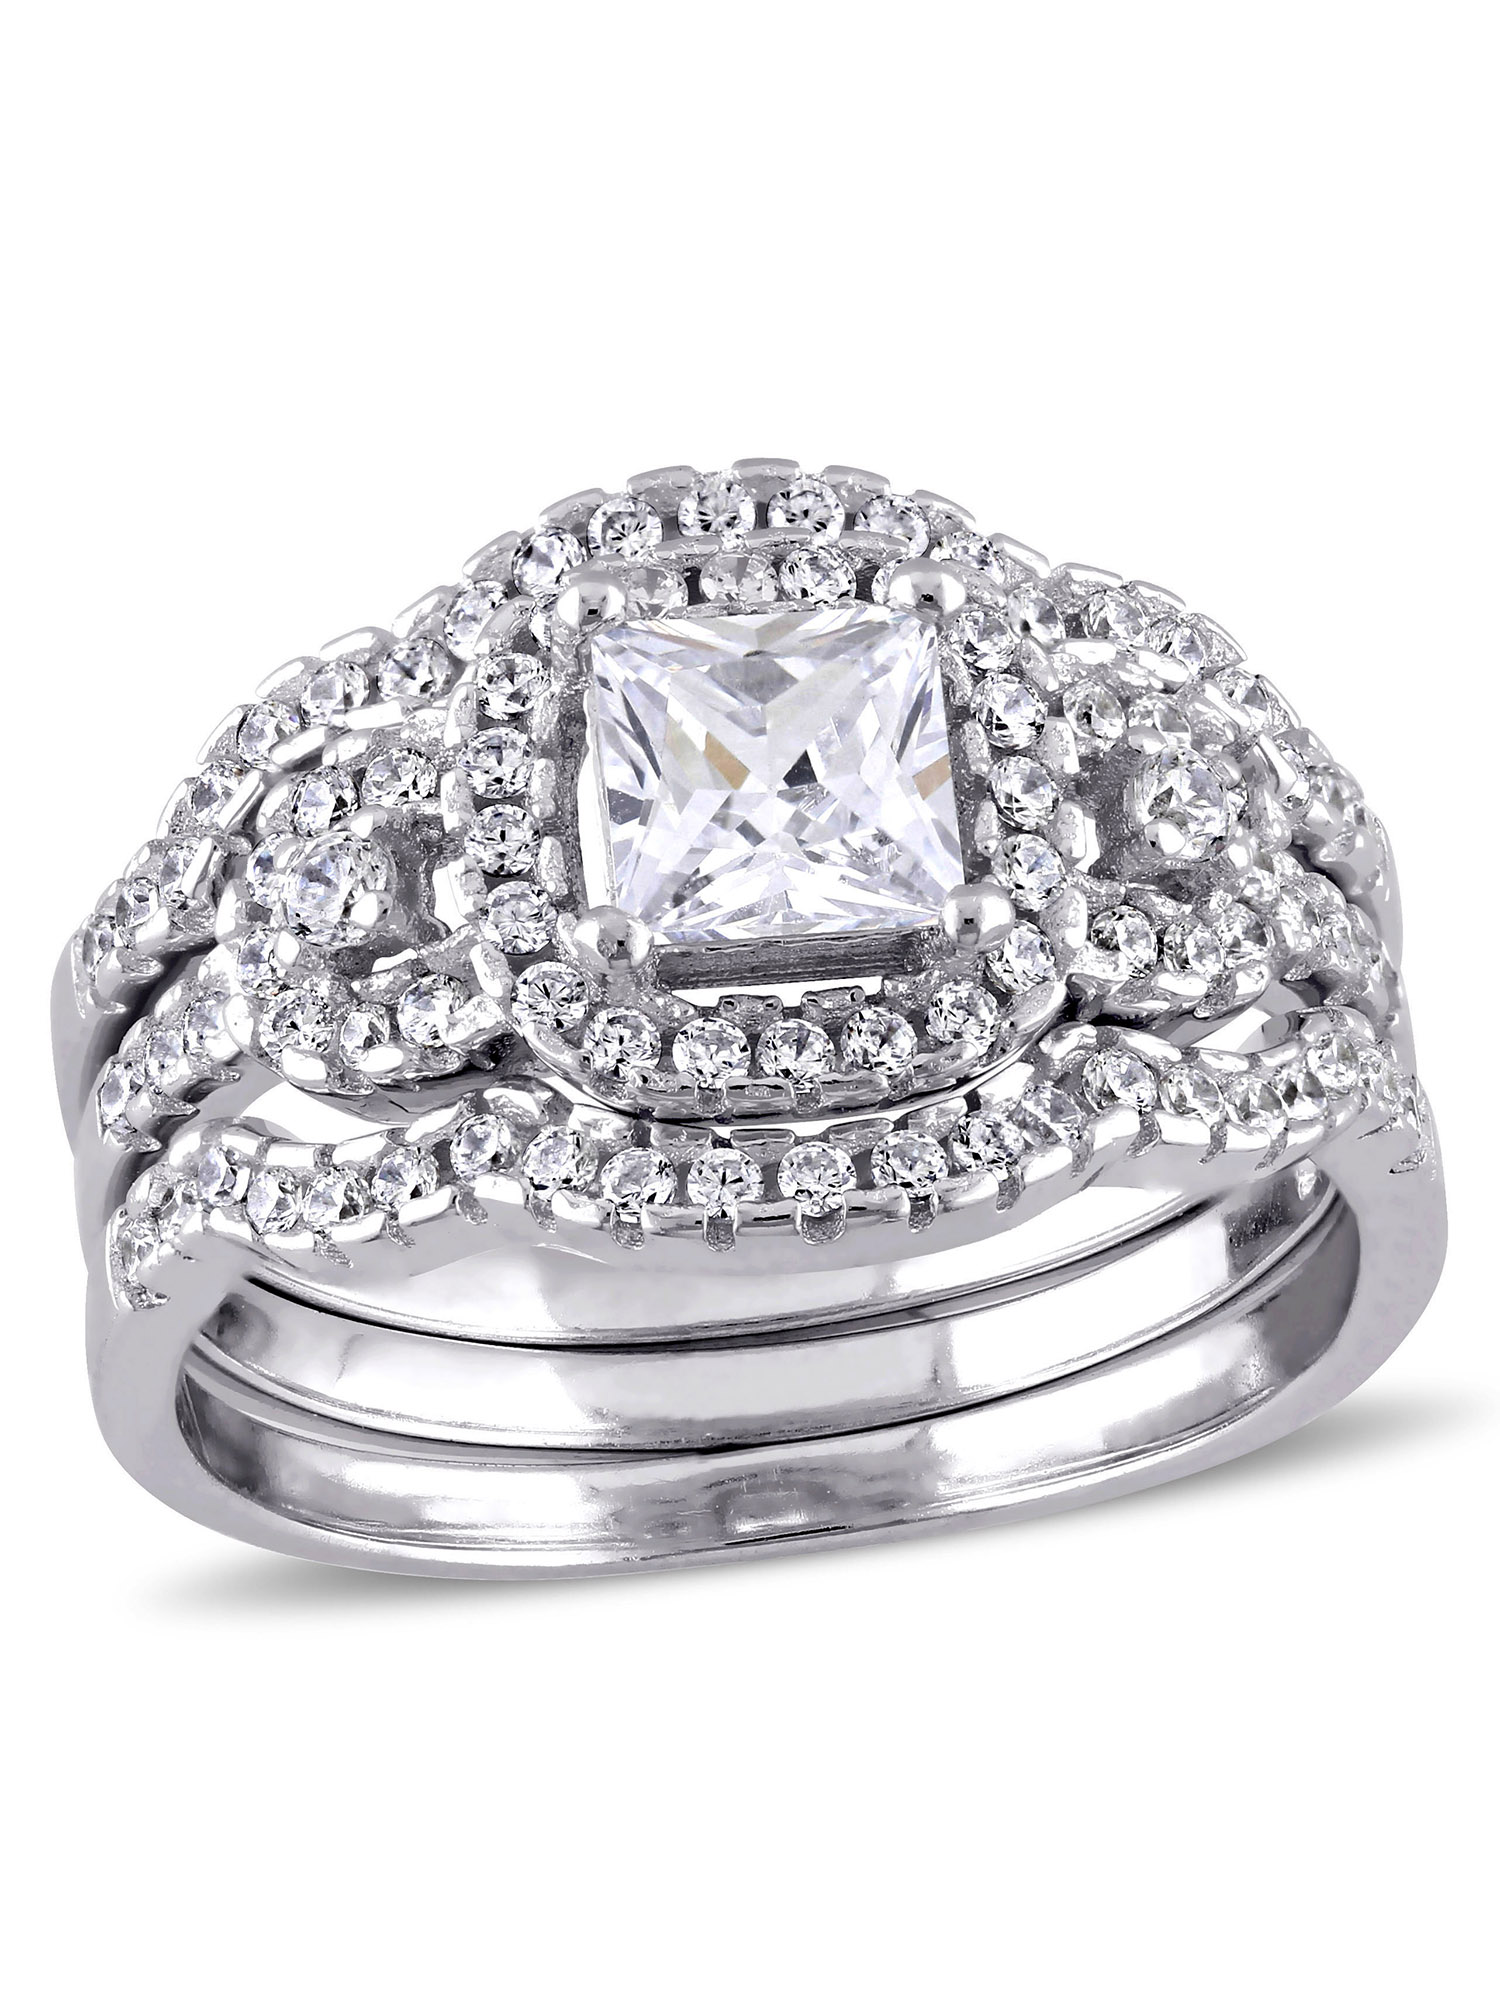 Wedding Ring Sets Walmartcom